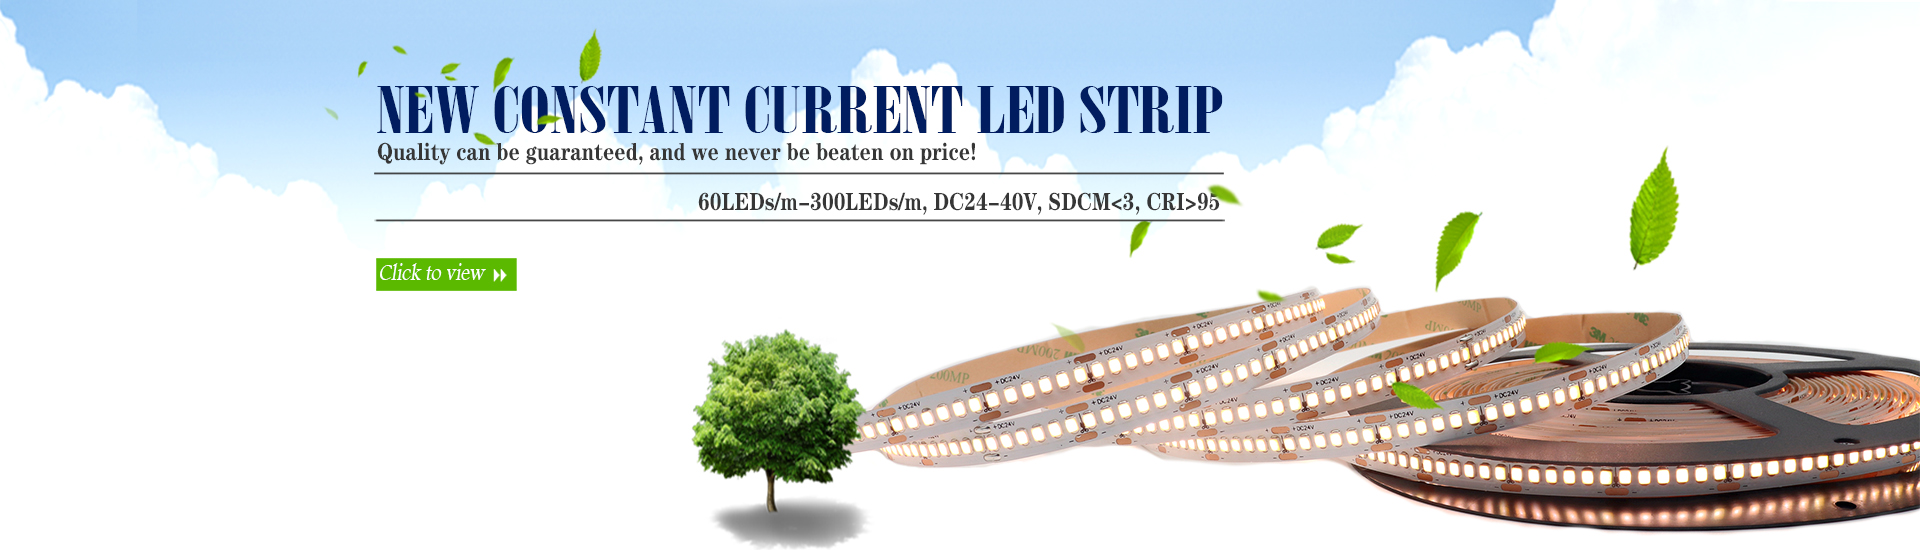 New constant current led strip